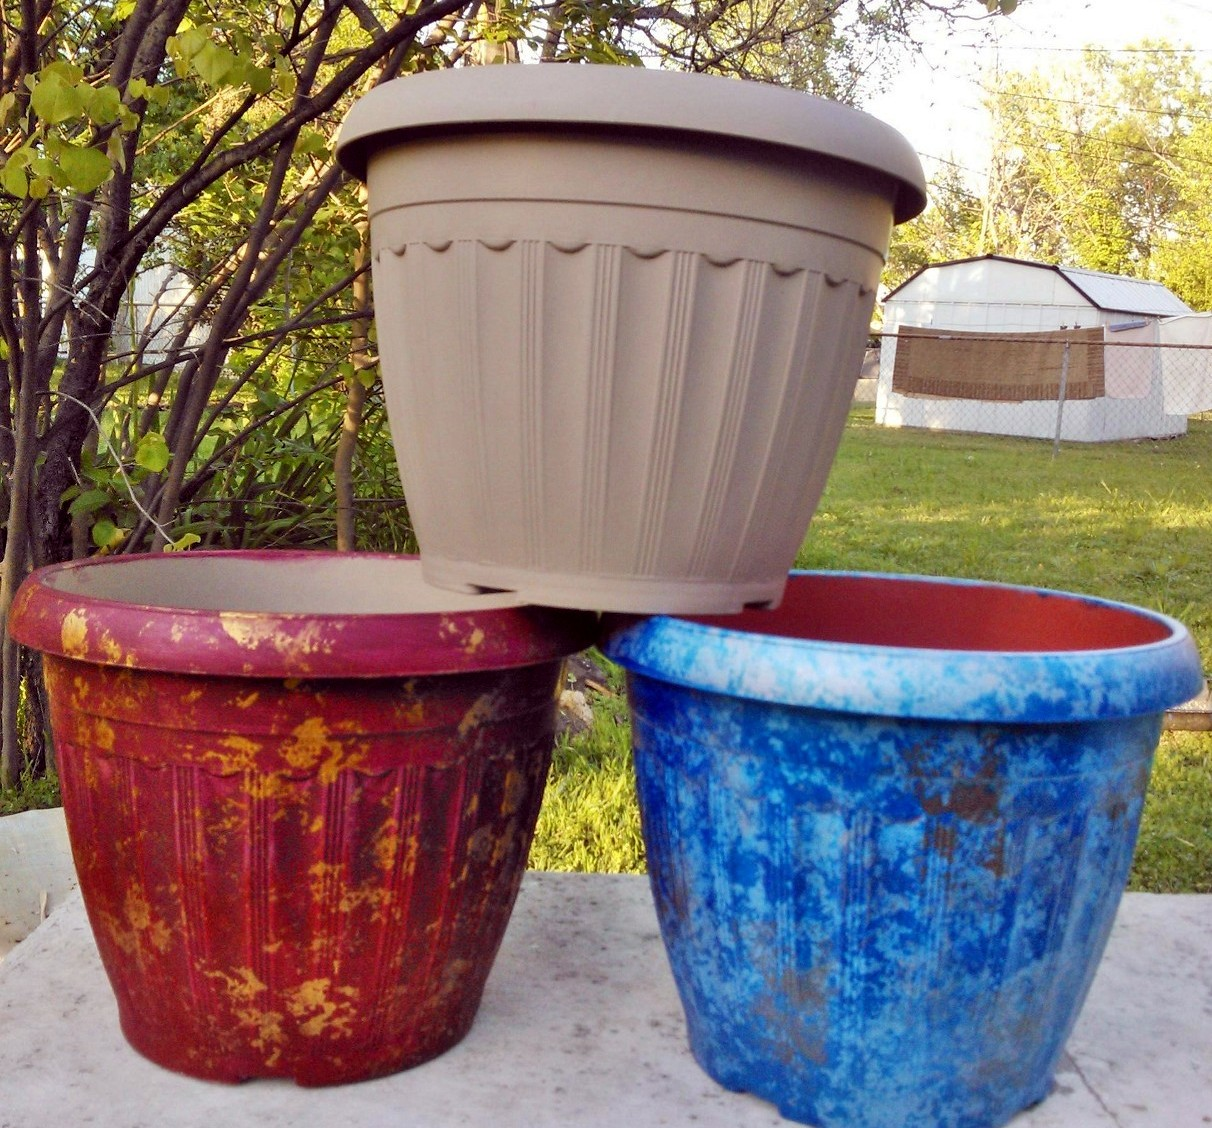 LL\u0027s Life and Times & LL\u0027s Life and Times: International Painted Plastic Flower Pots